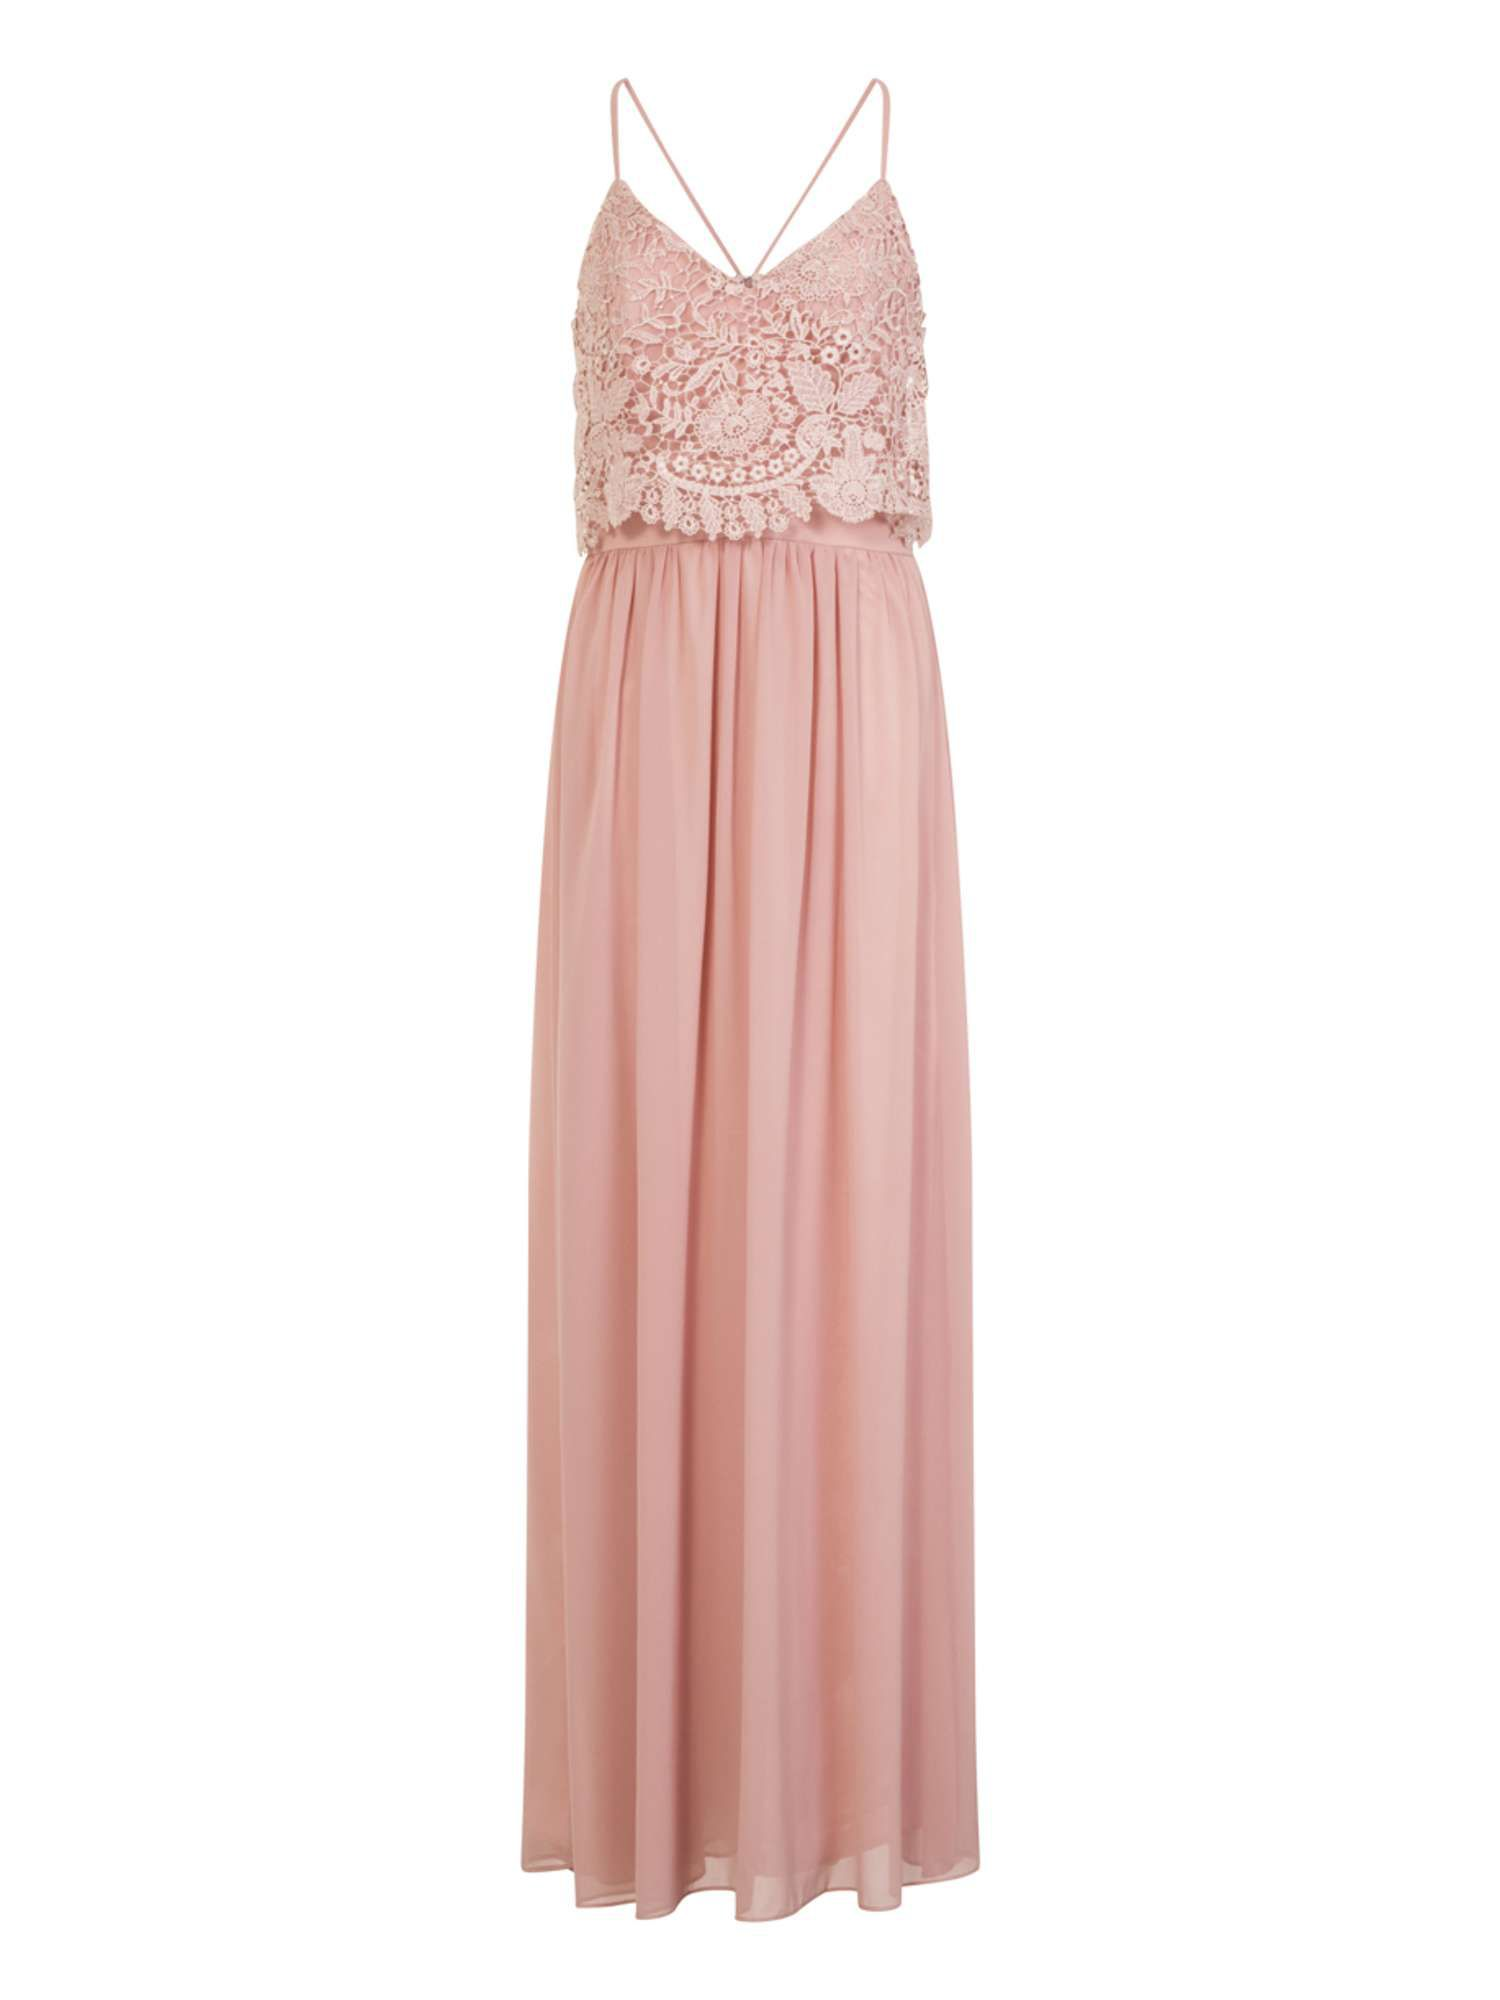 Chi Chi London Crochet Overlay Maxi Dress, Pink